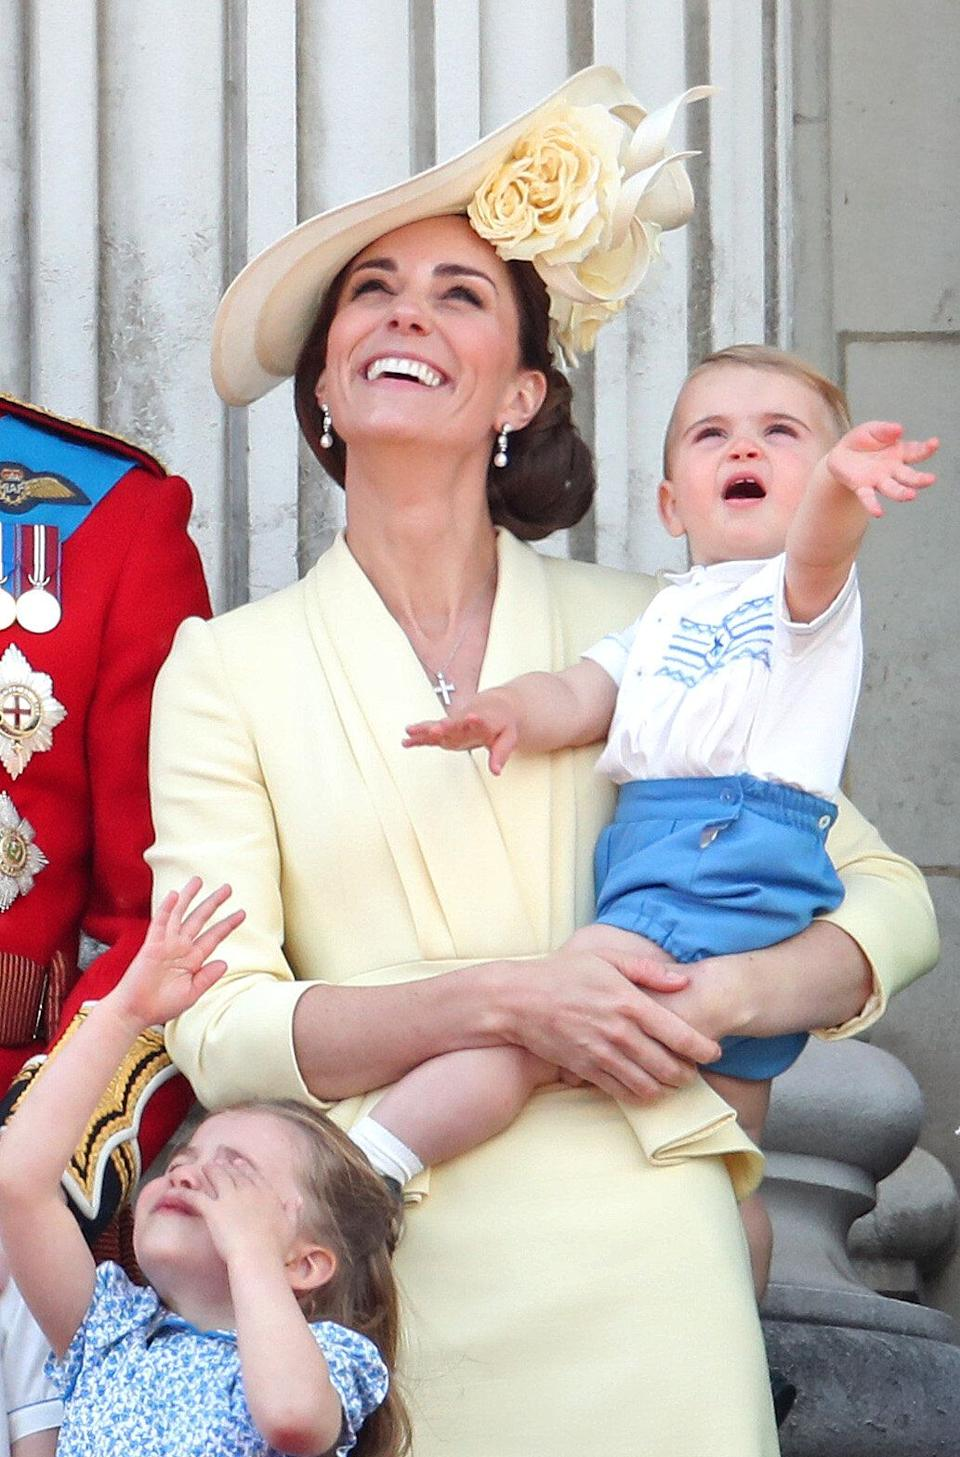 LONDON, ENGLAND - JUNE 08: Princess Charlotte, Catherine, Duchess of Cambridge and Prince Louis during Trooping The Colour, the Queen's annual birthday parade, on June 08, 2019 in London, England. (Photo by Chris Jackson/Getty Images)